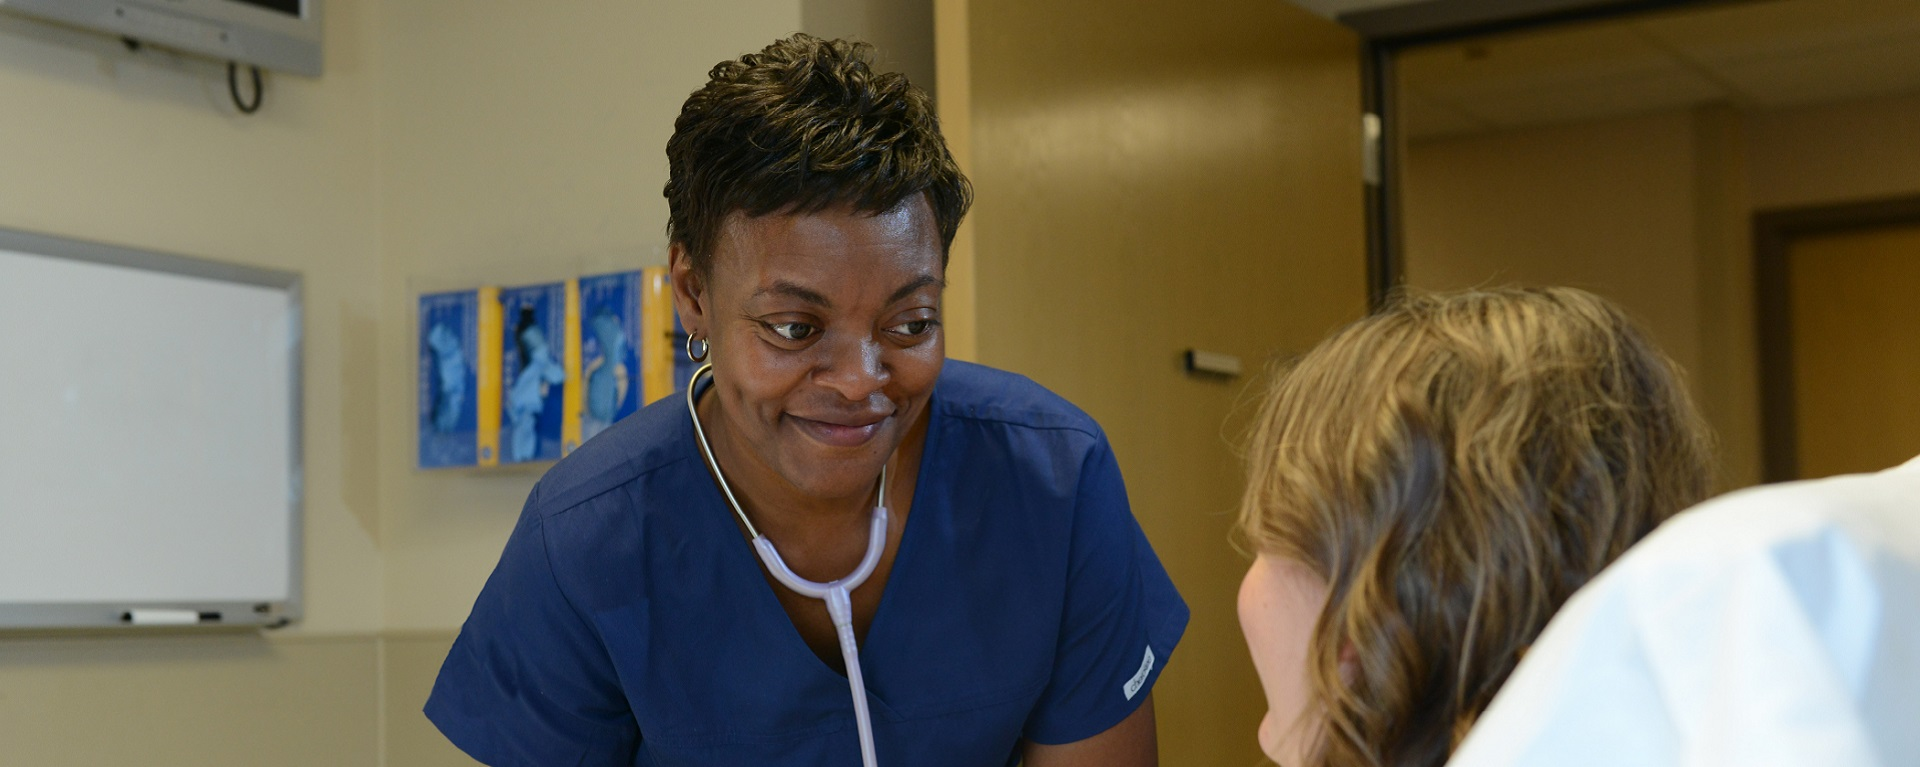 A smiling black nurse bending over to help a patient in bed.